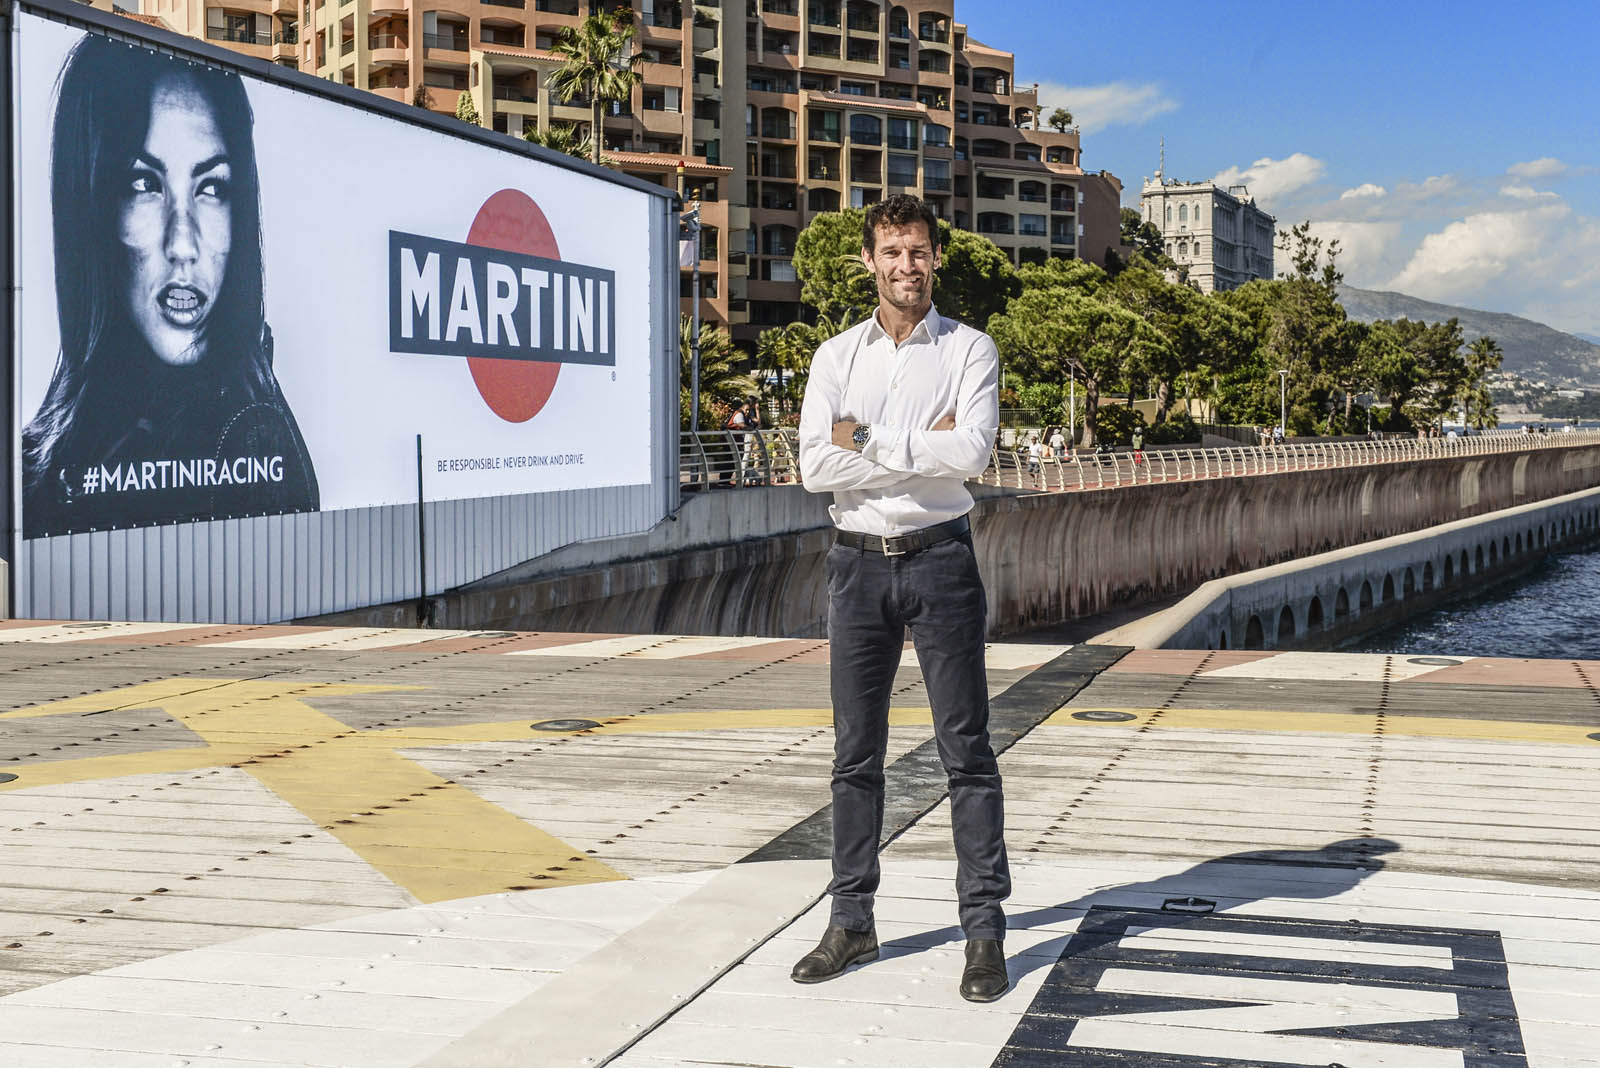 Martini_Monaco_Billboard_06